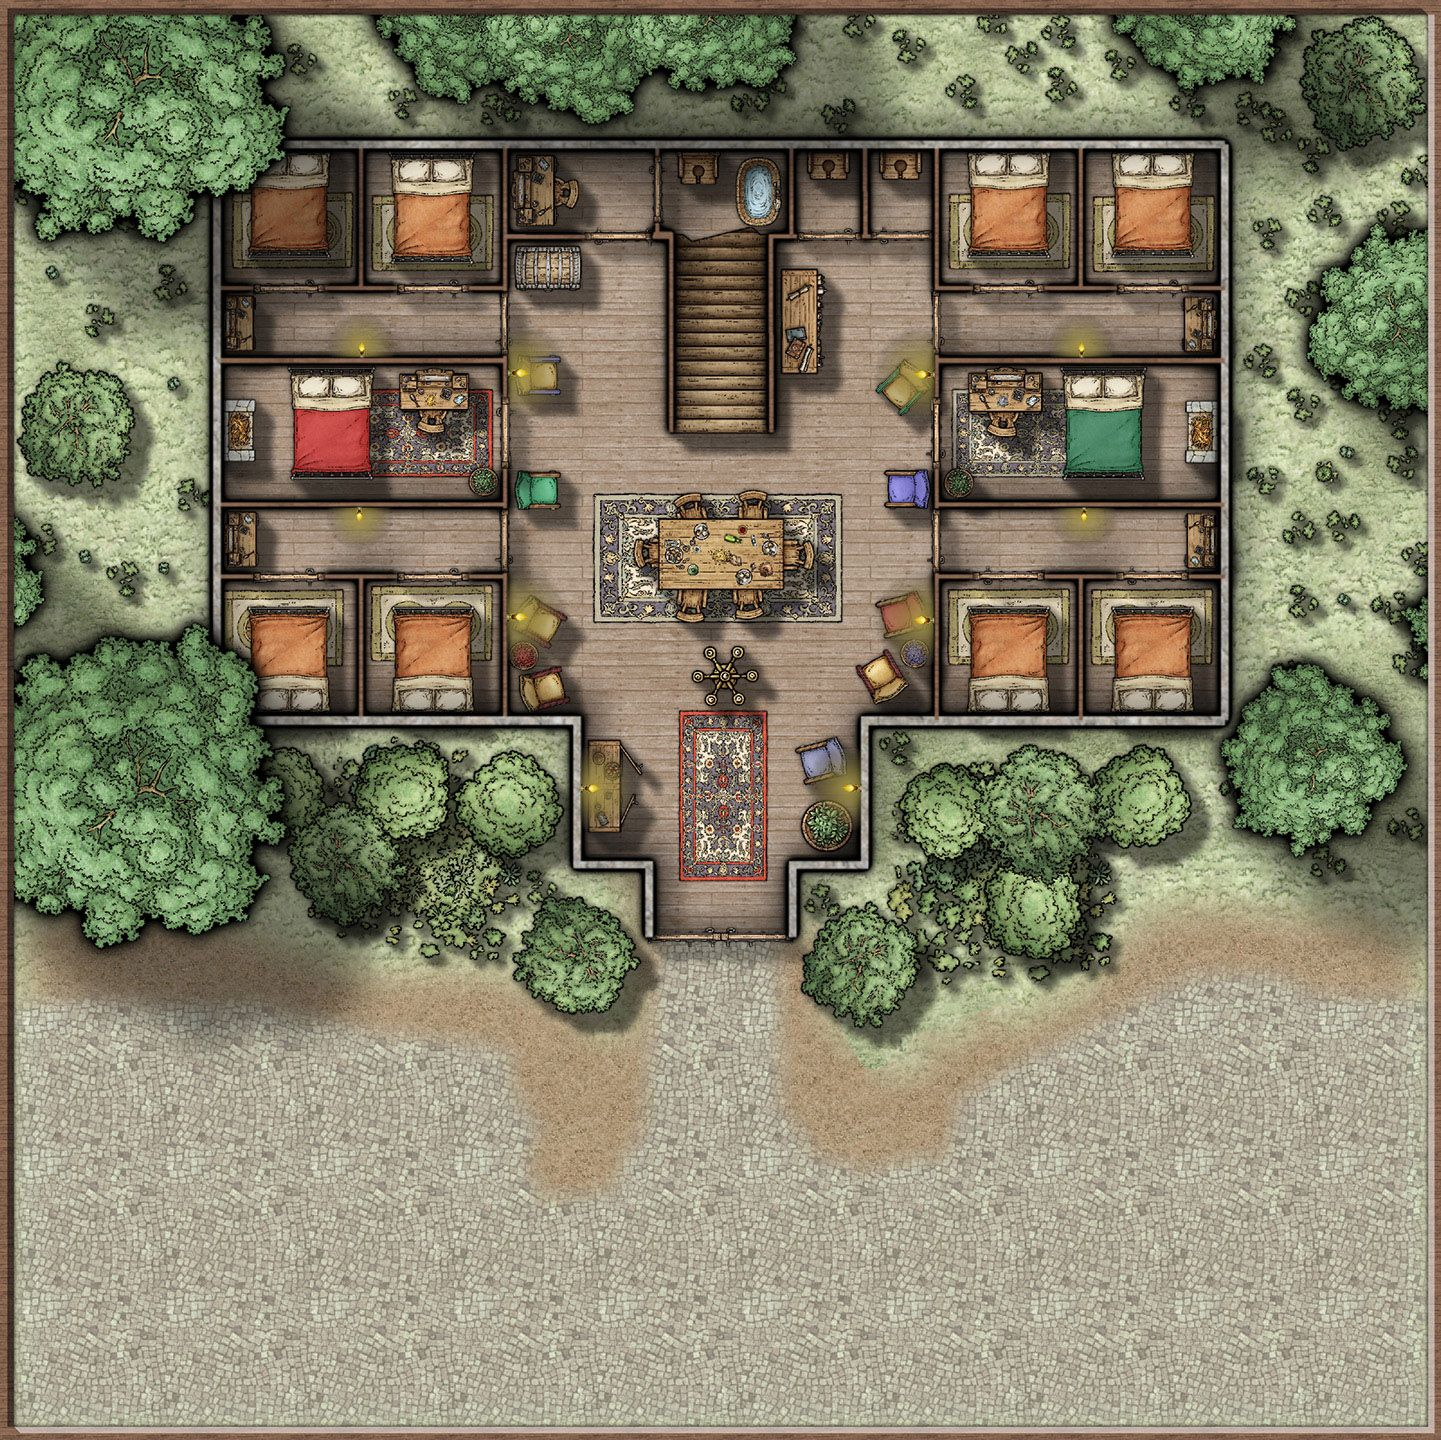 Pin by Bailey Poletti on Maps in 2019   Fantasy city map, Fantasy